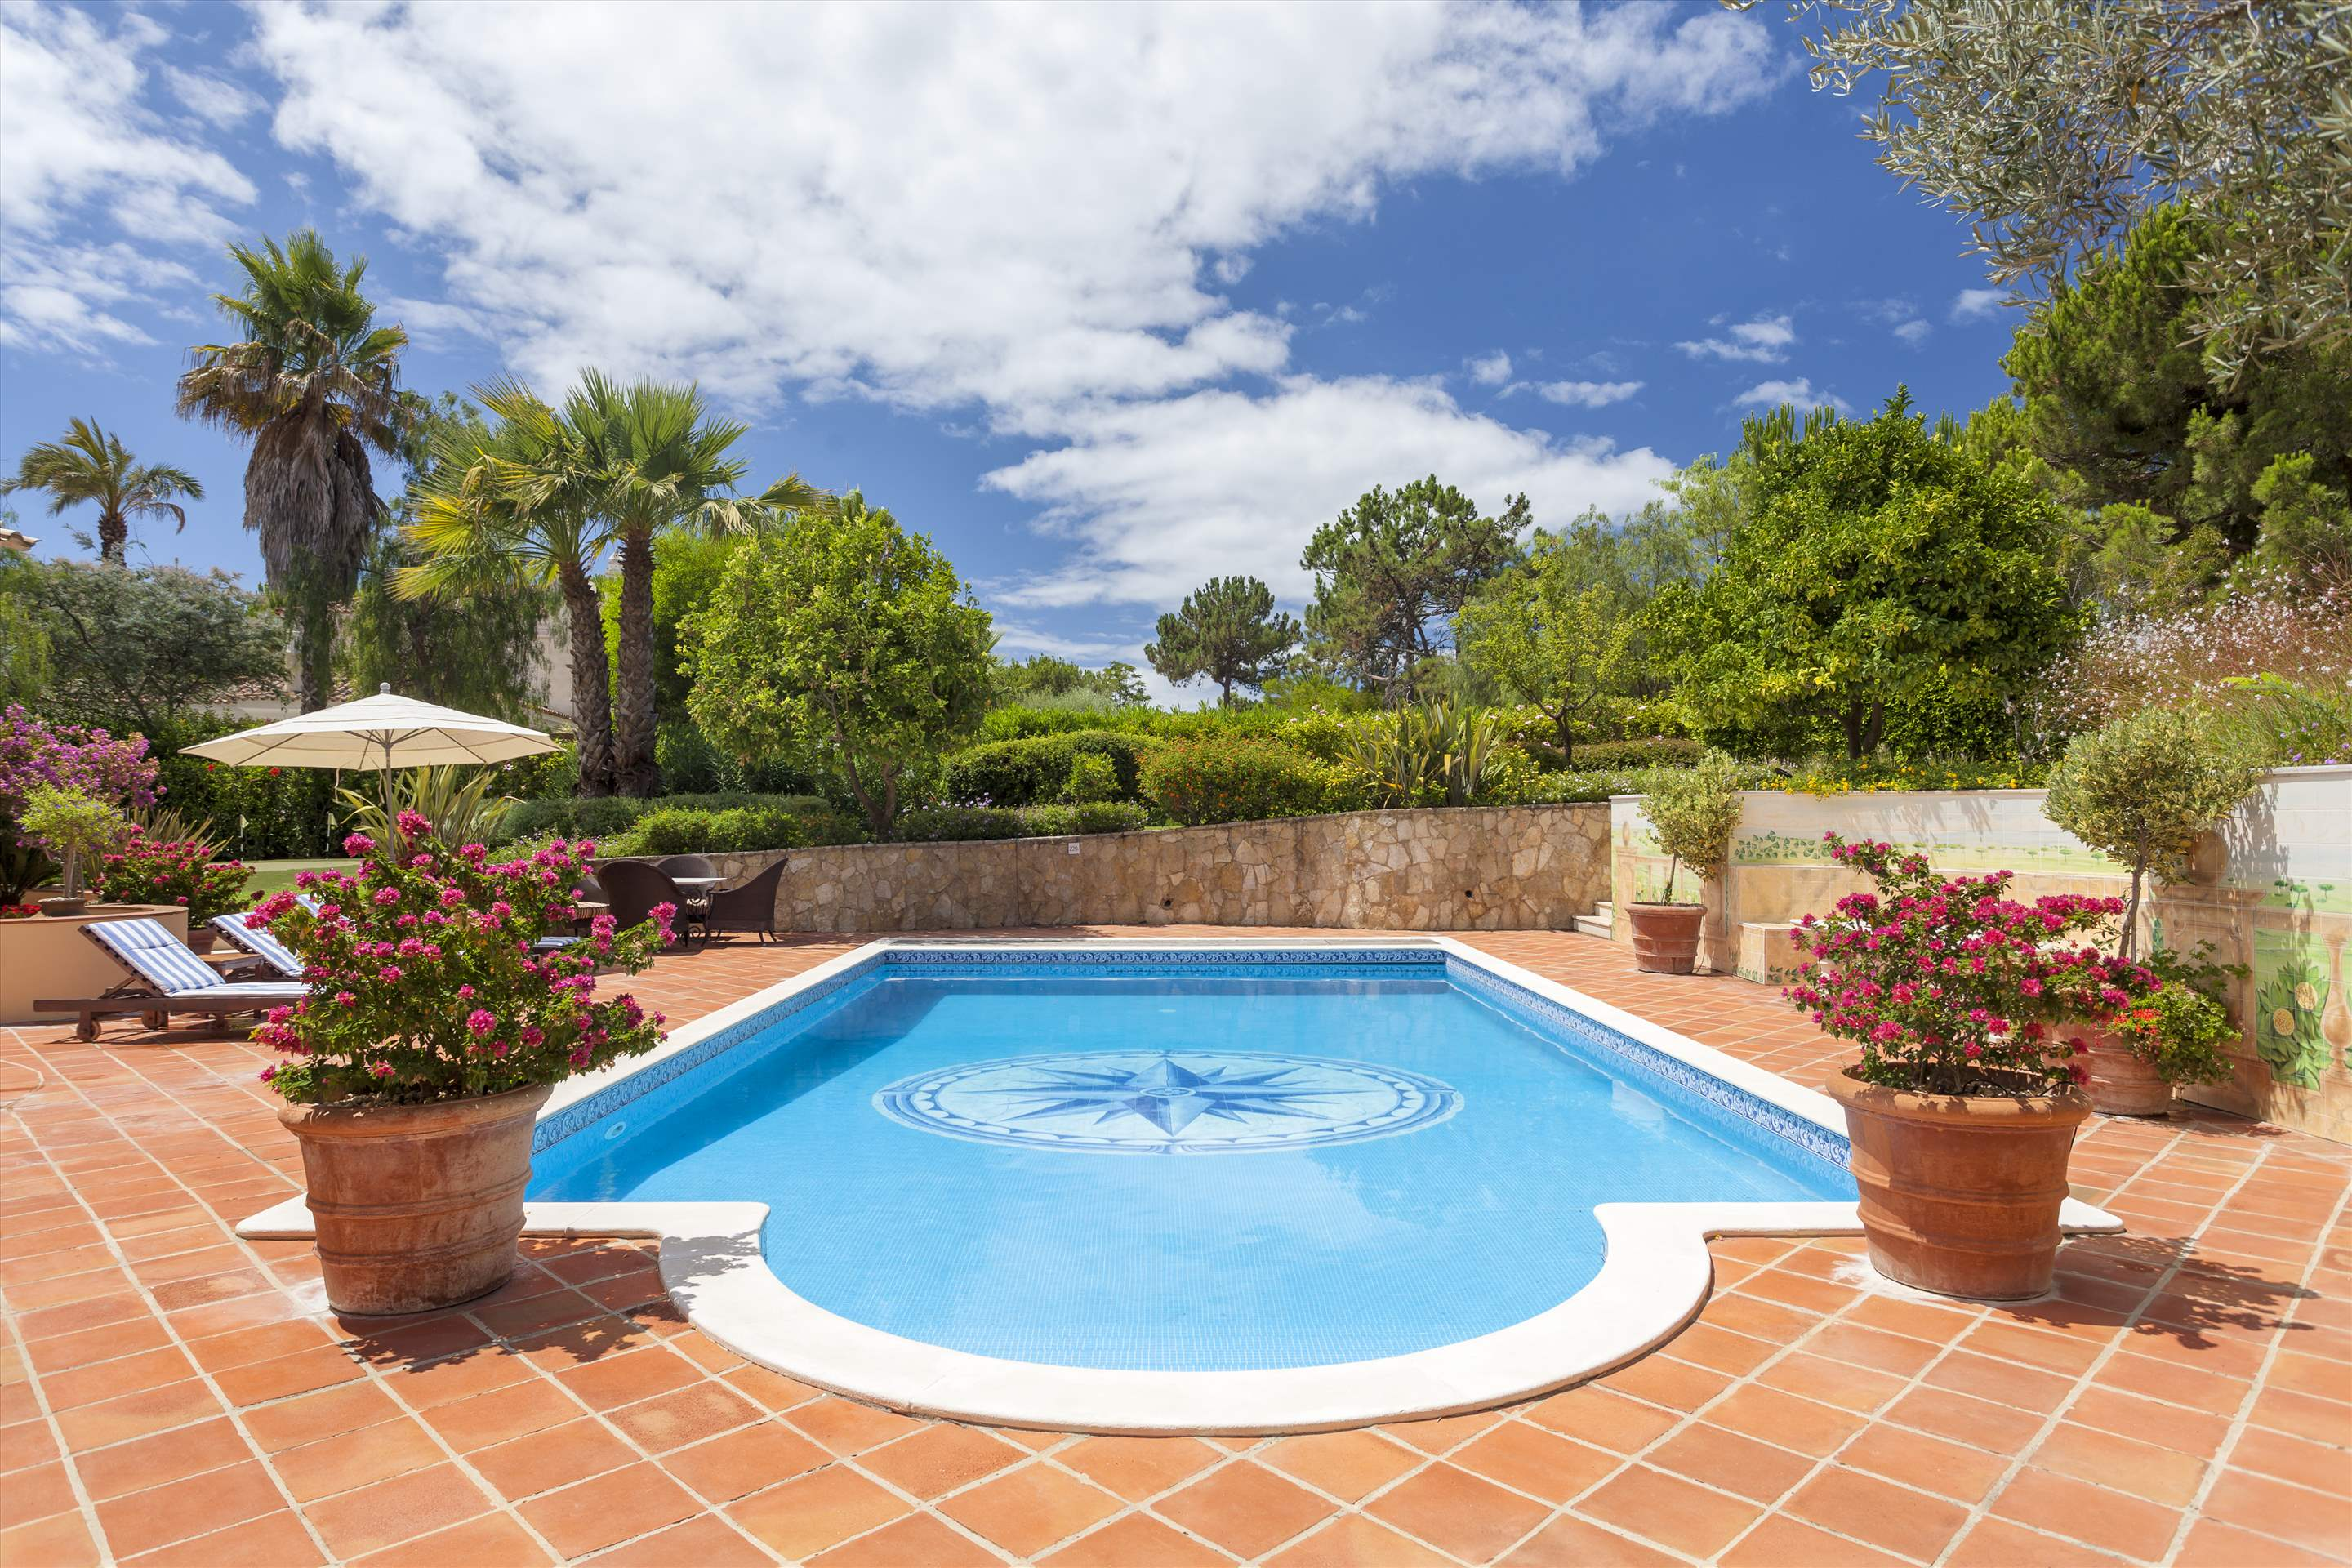 Villa Panache, 4 bedroom villa in Quinta do Lago, Algarve Photo #19